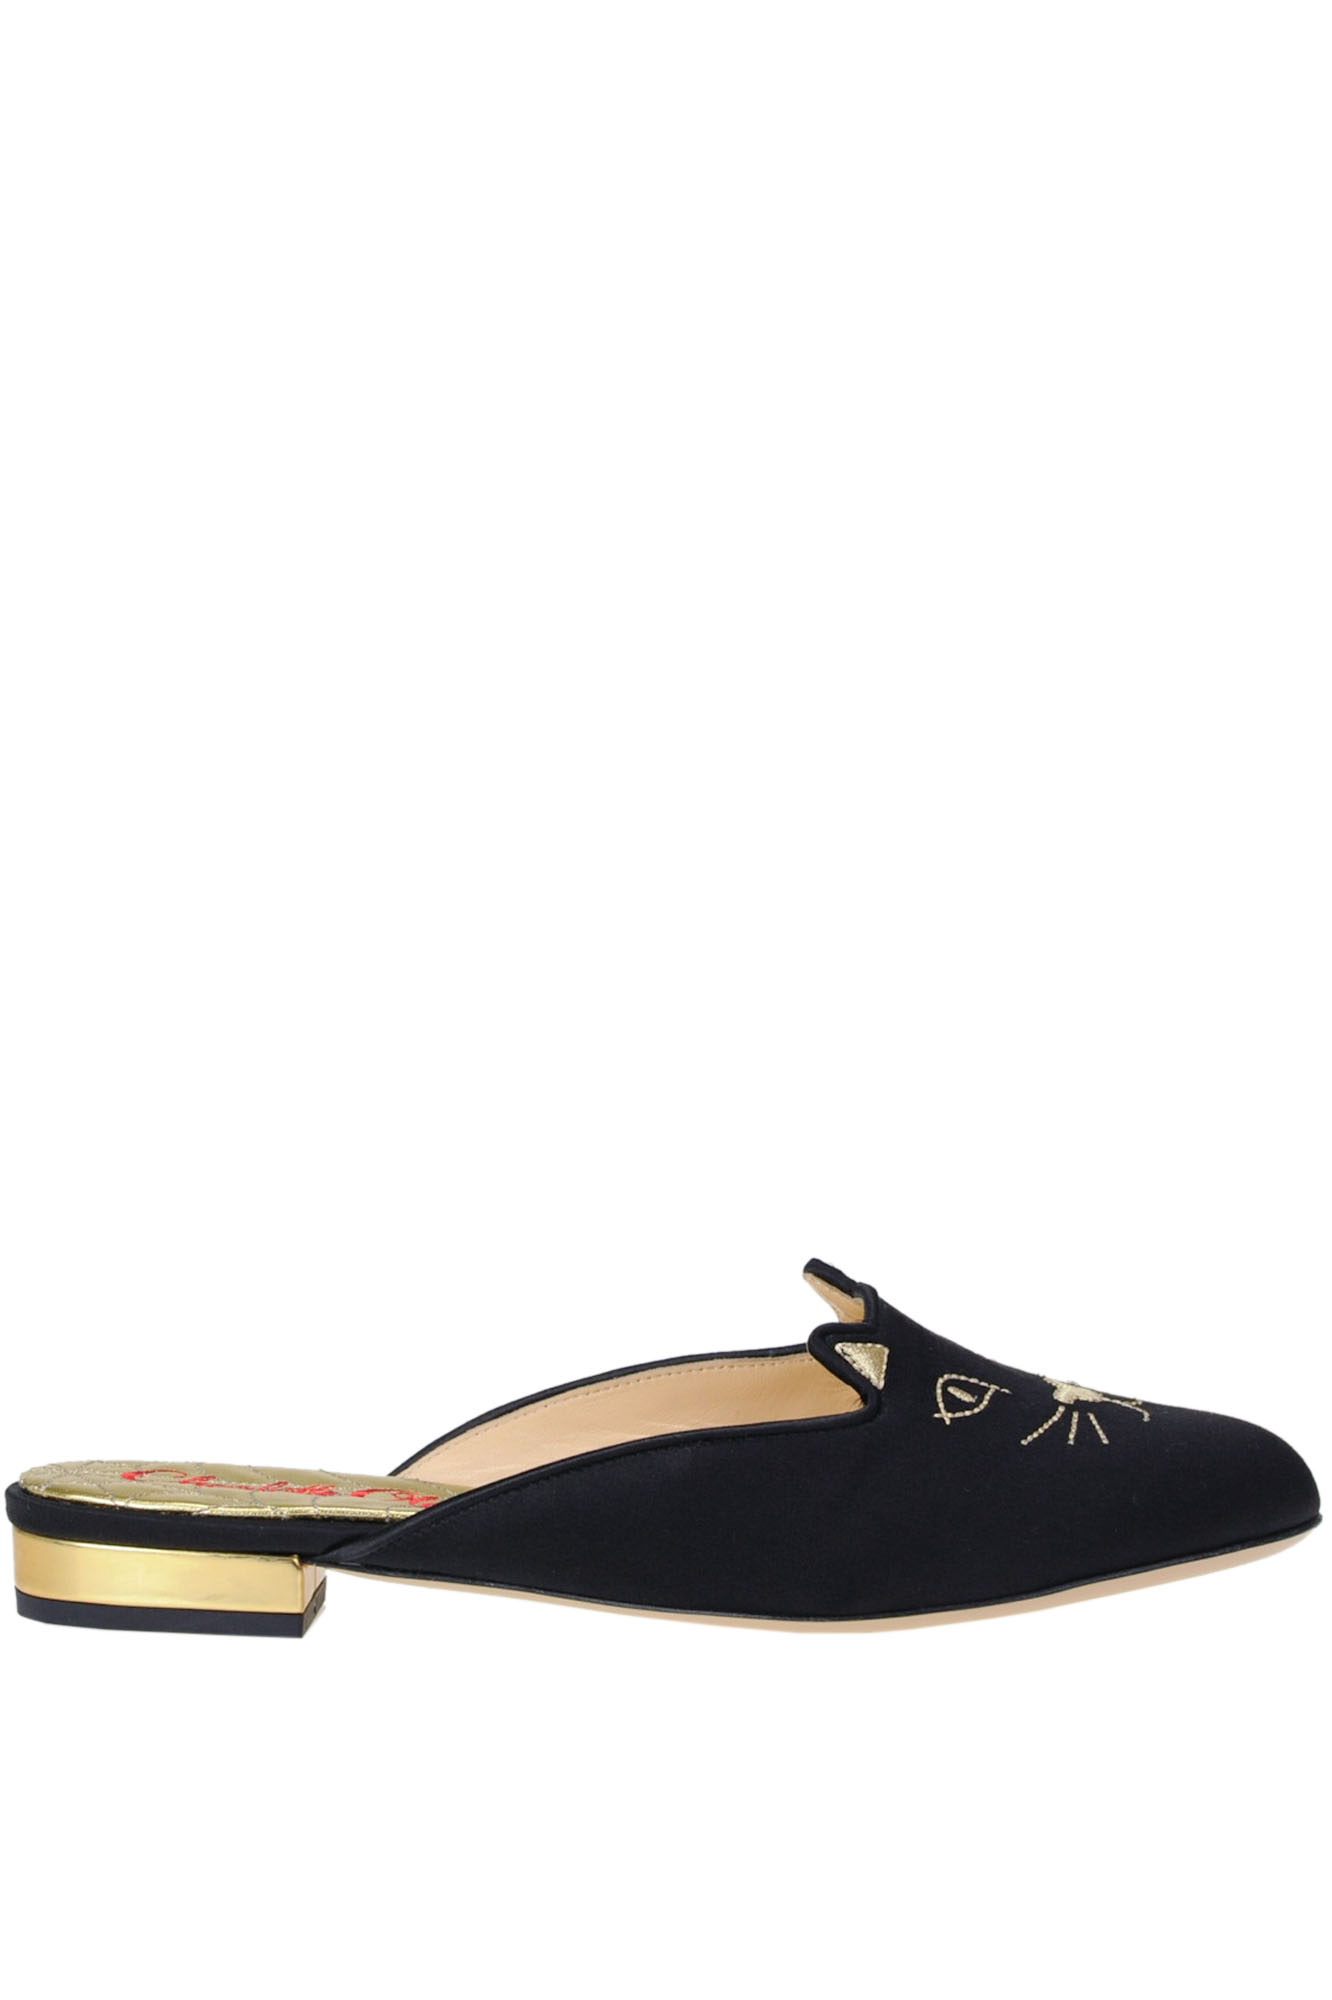 Charlotte Olympia EMBROIDERED SATIN MULES